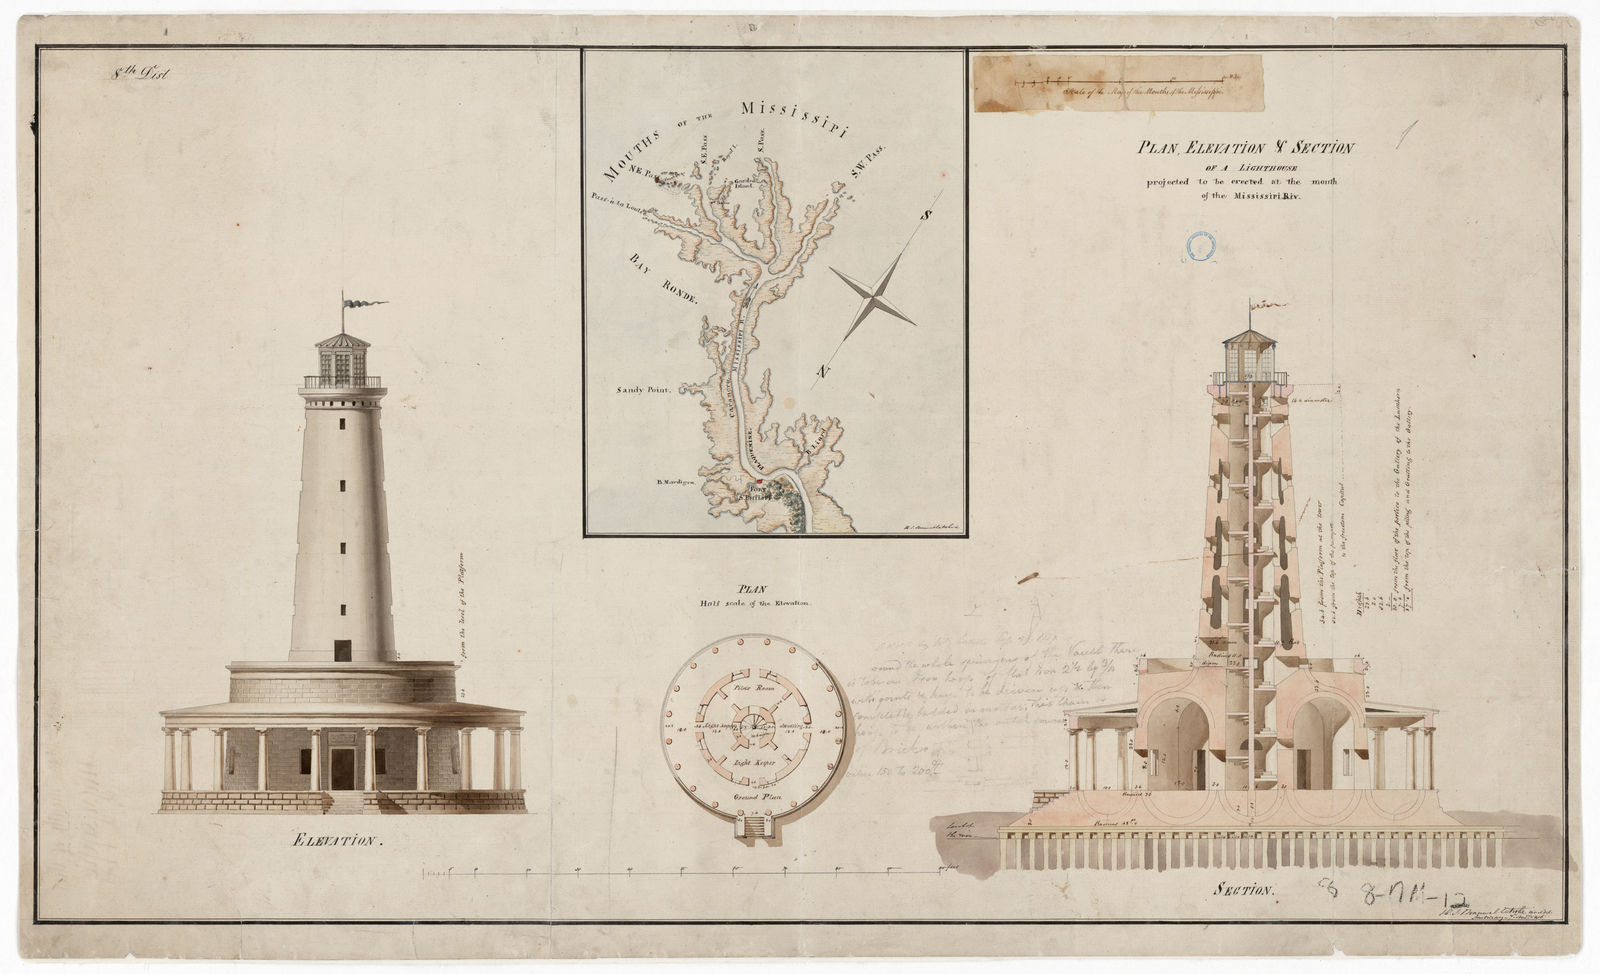 Drawing Showing the Proposed Lighthouse at the Mouth of the Mississippi River, Louisiana